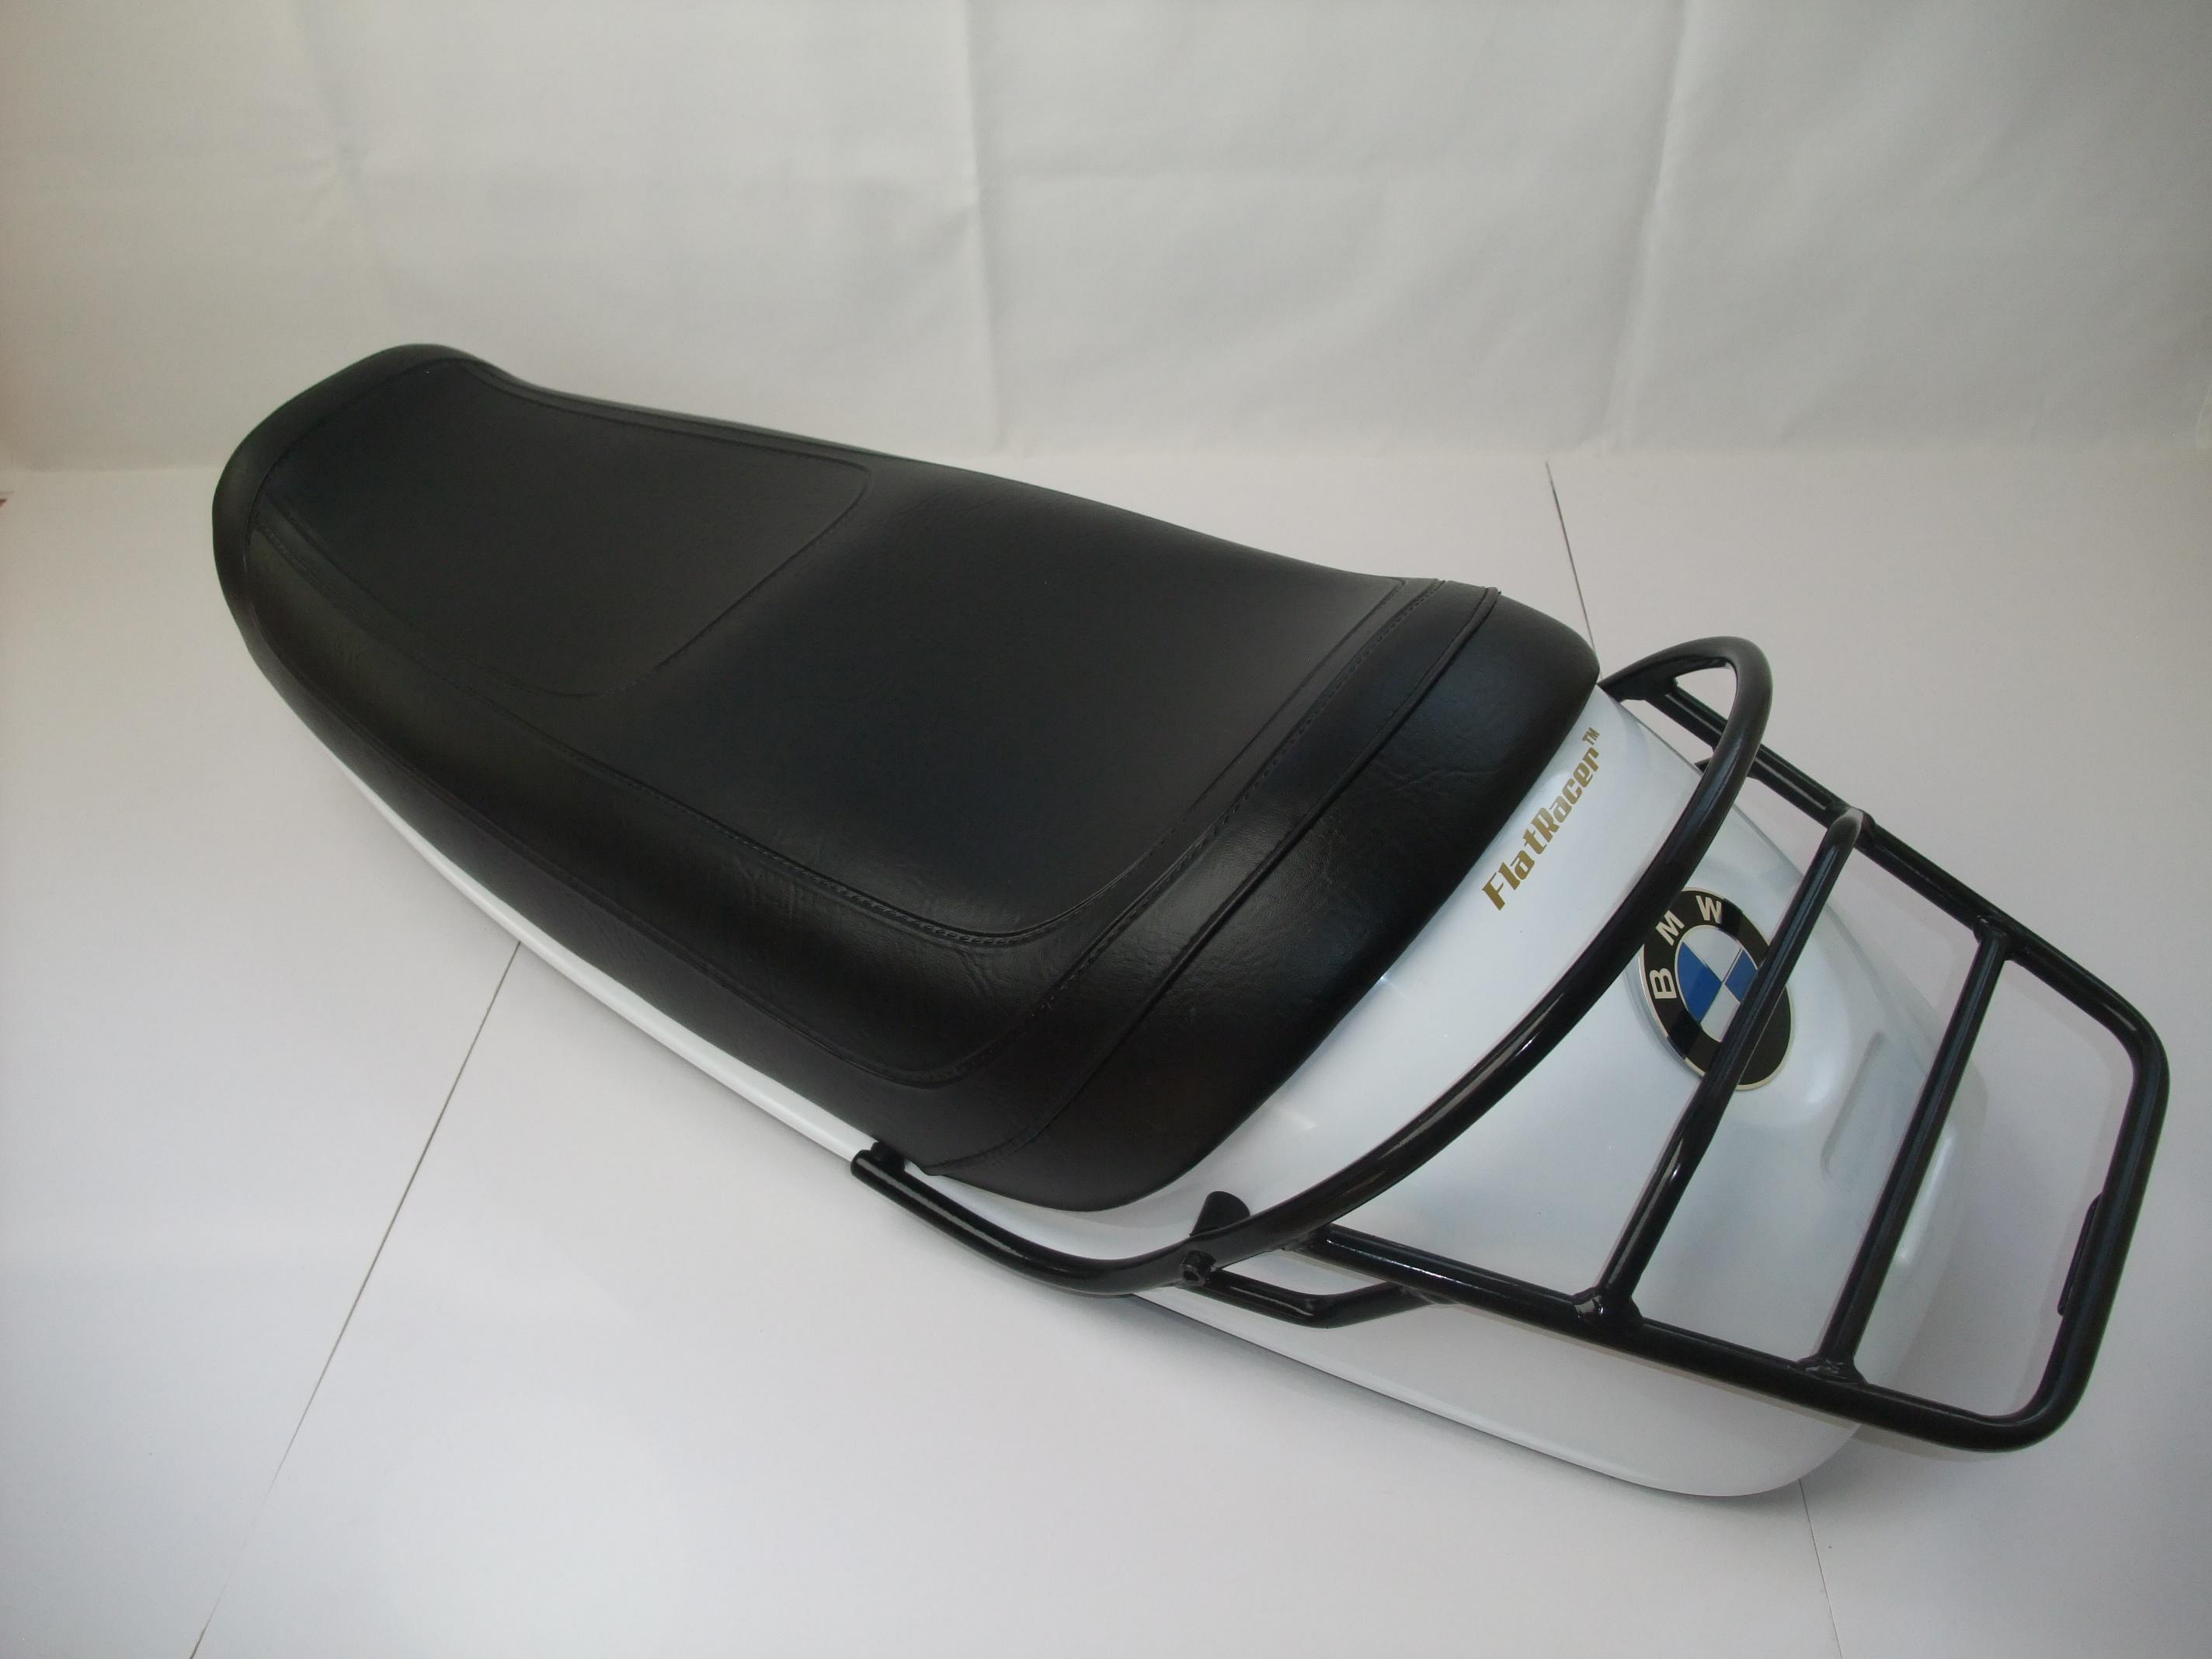 FlatRacer BMW R90S 1974 dual sports seat - early plain black seat cover